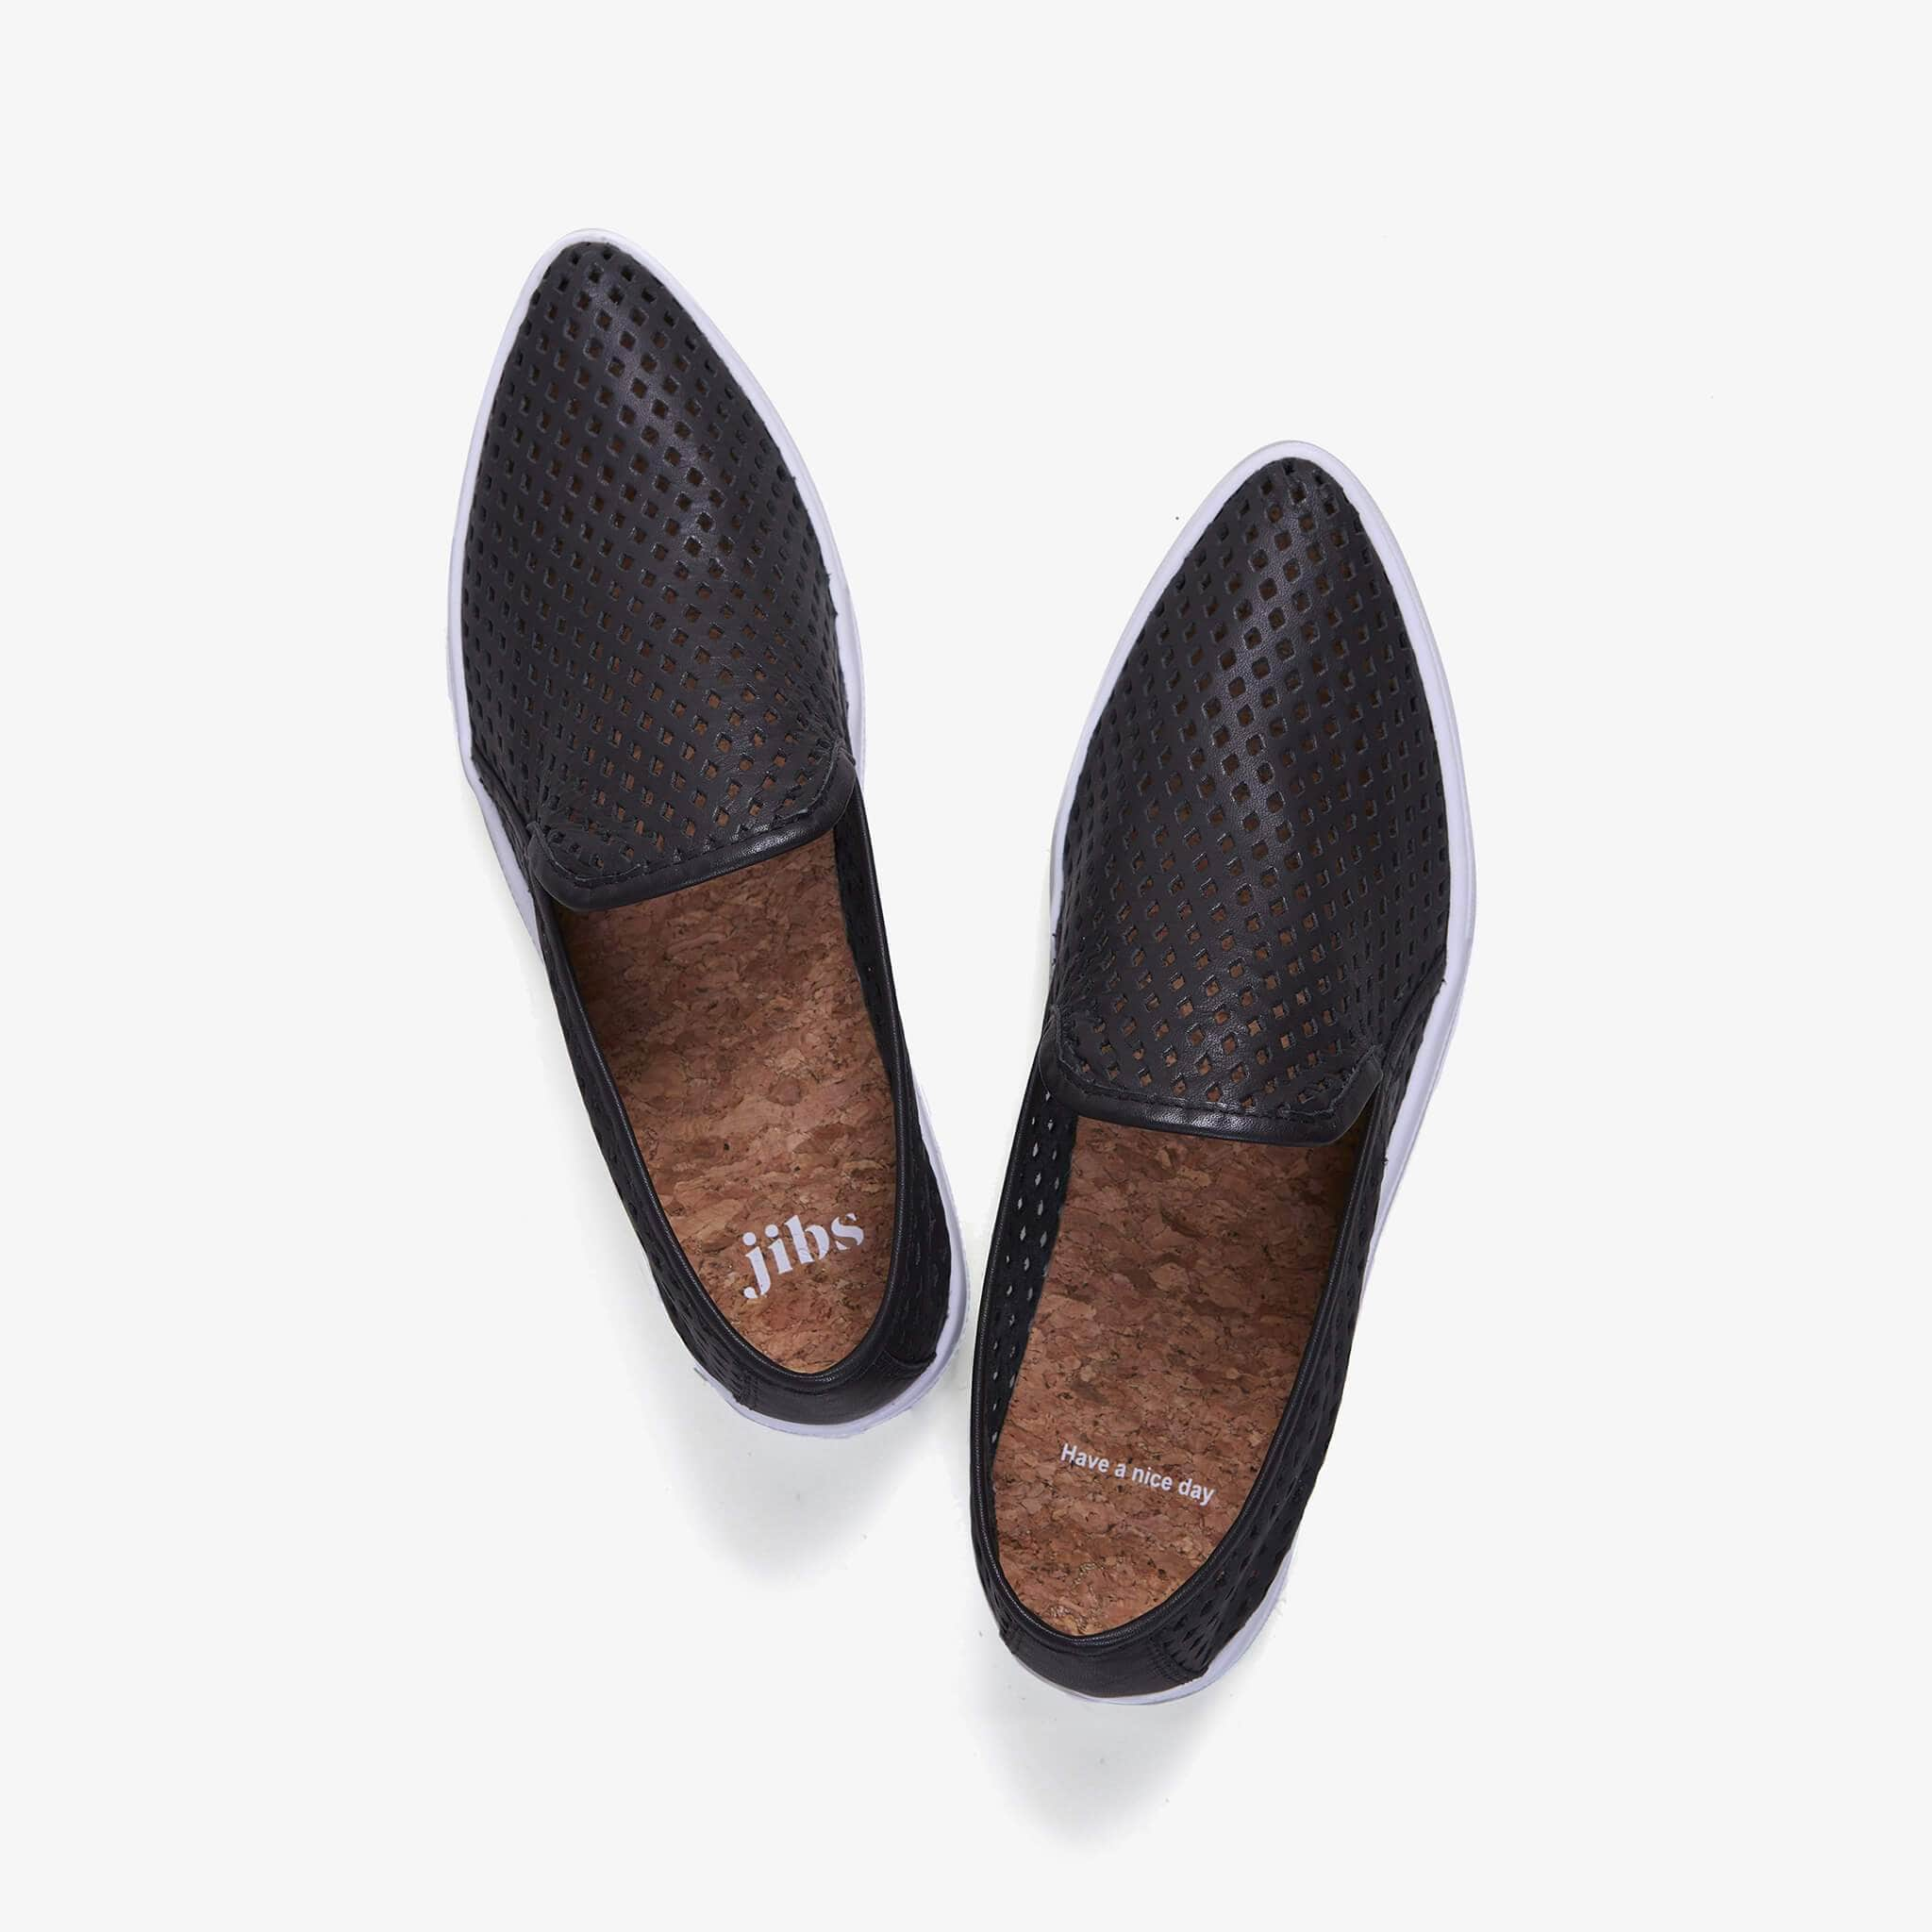 Jibs Slim Jet Black Slip On Sneaker Flat Top Have A Nice Day